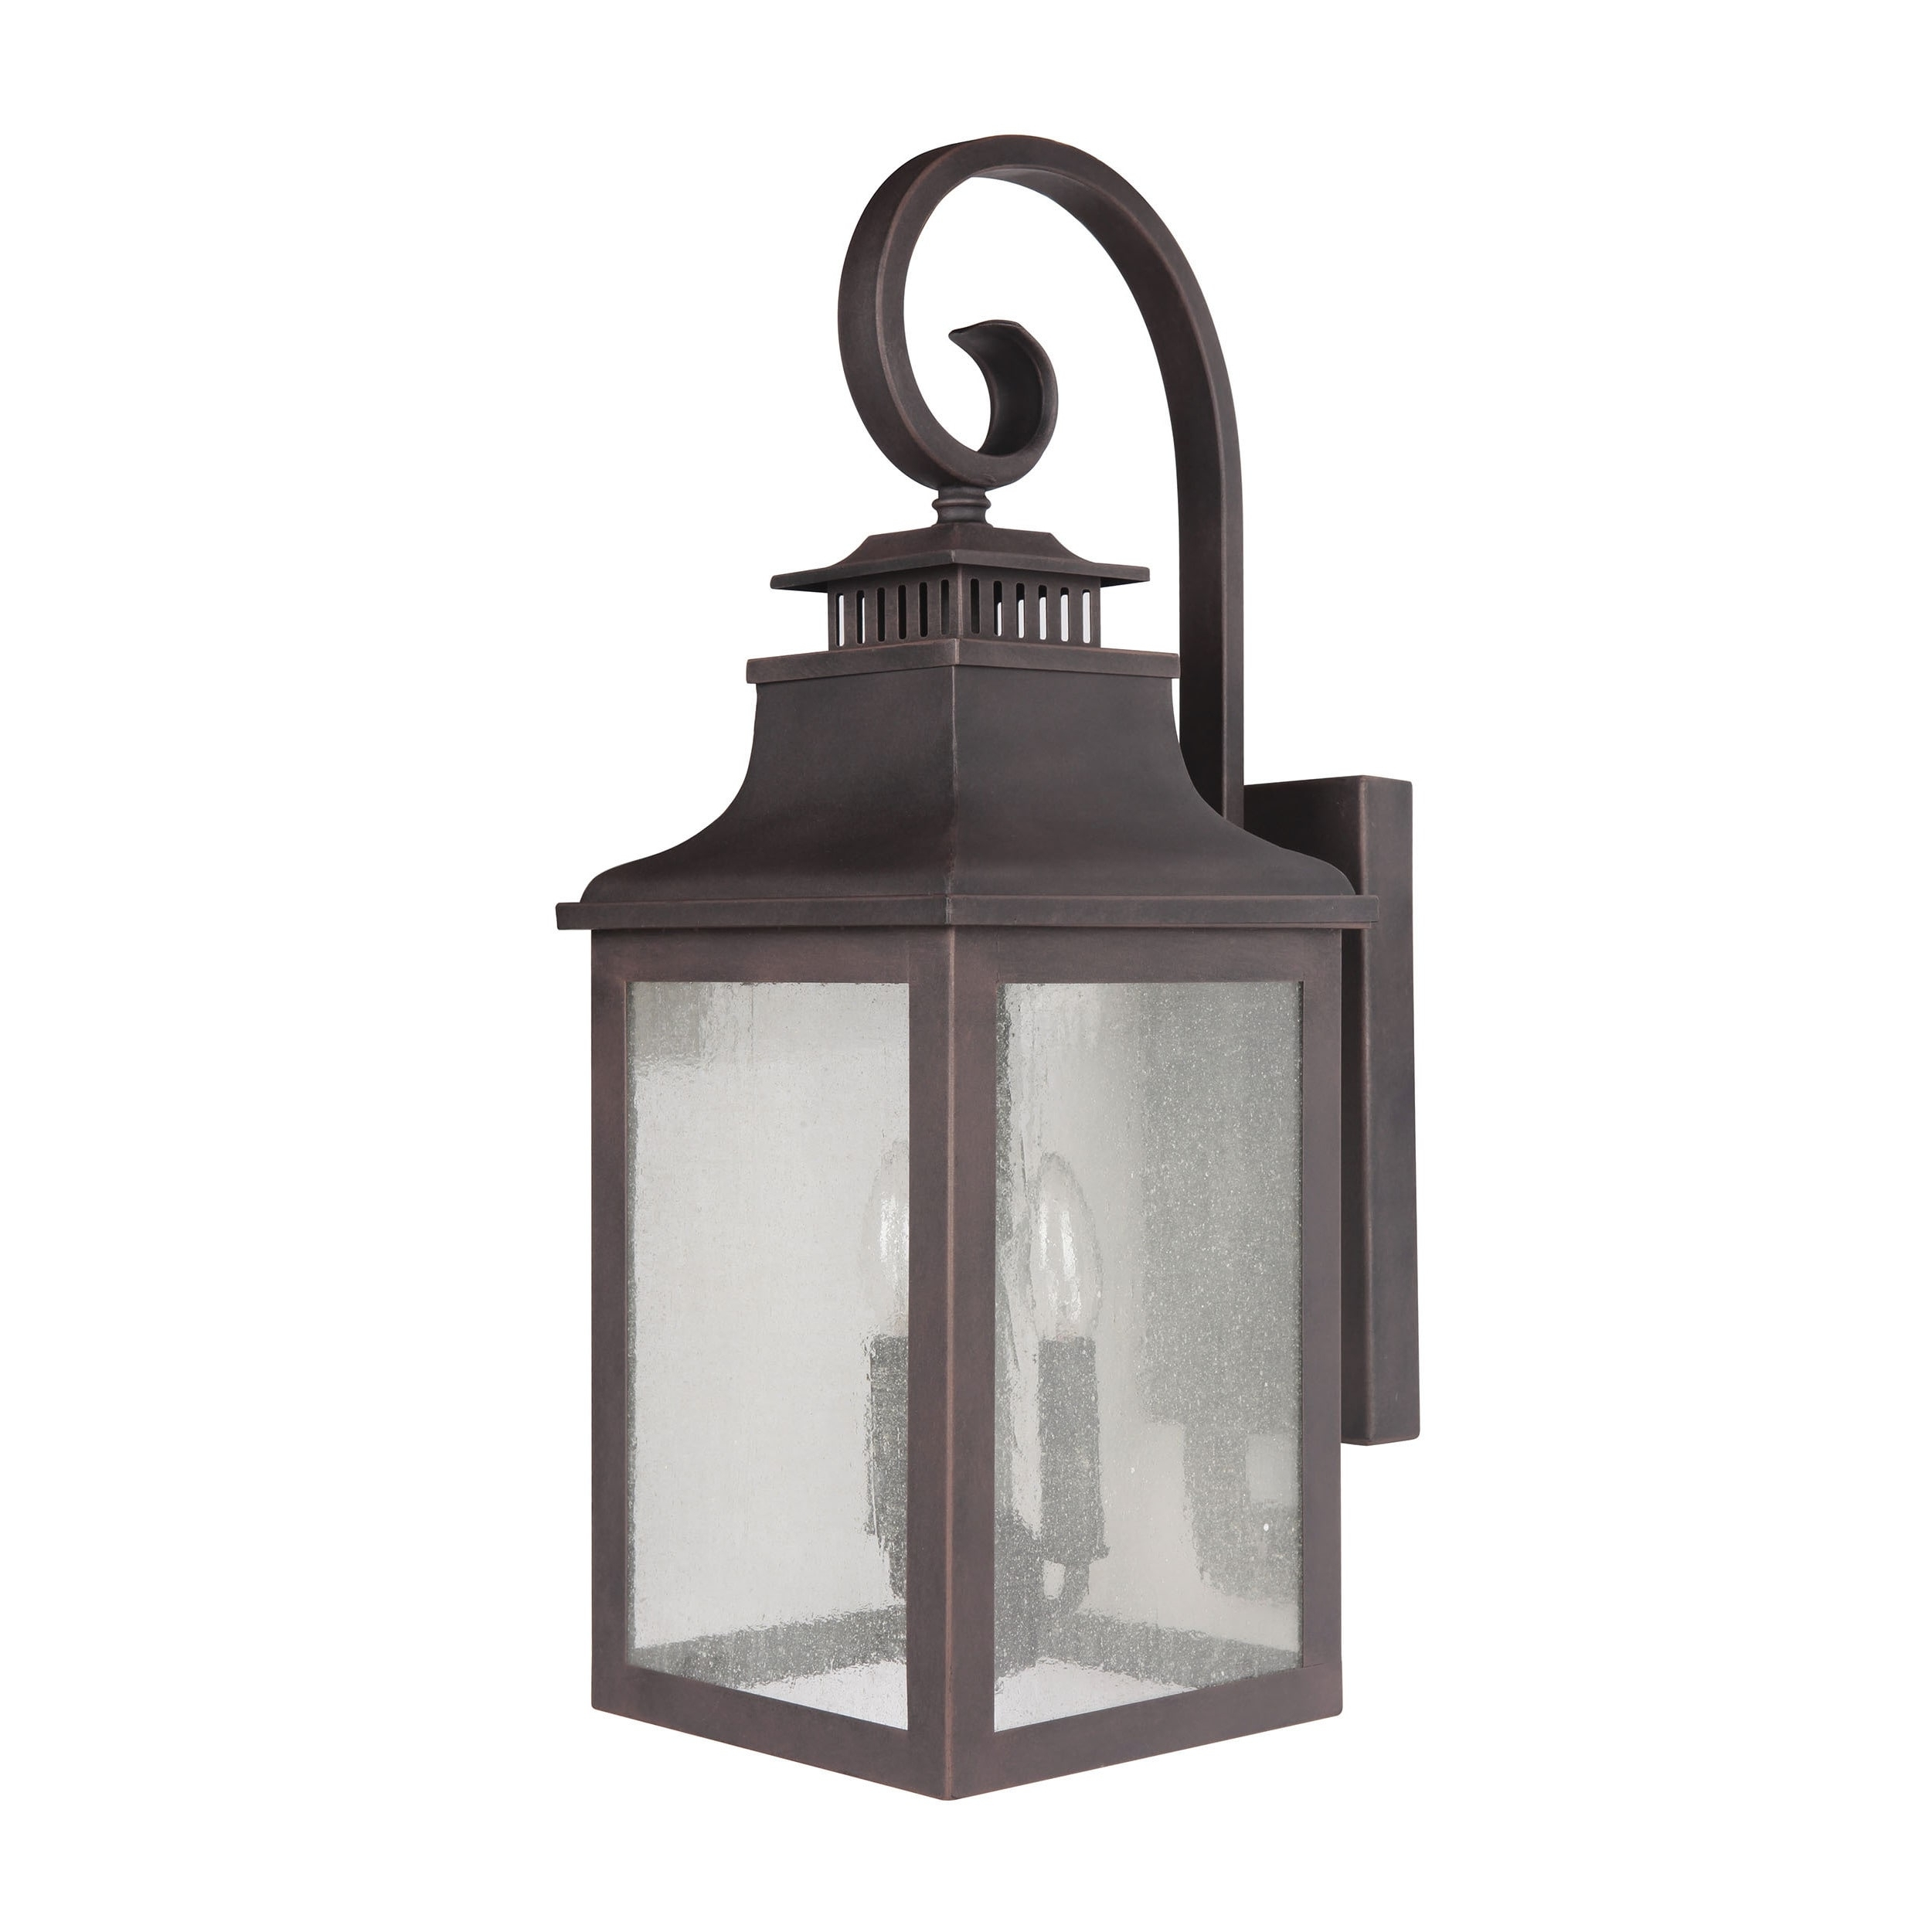 Shop Y Decor Morgan 2 Light Exterior Light In Rustic Bronze – Free In Well Liked Rustic Outdoor Electric Lanterns (View 17 of 20)